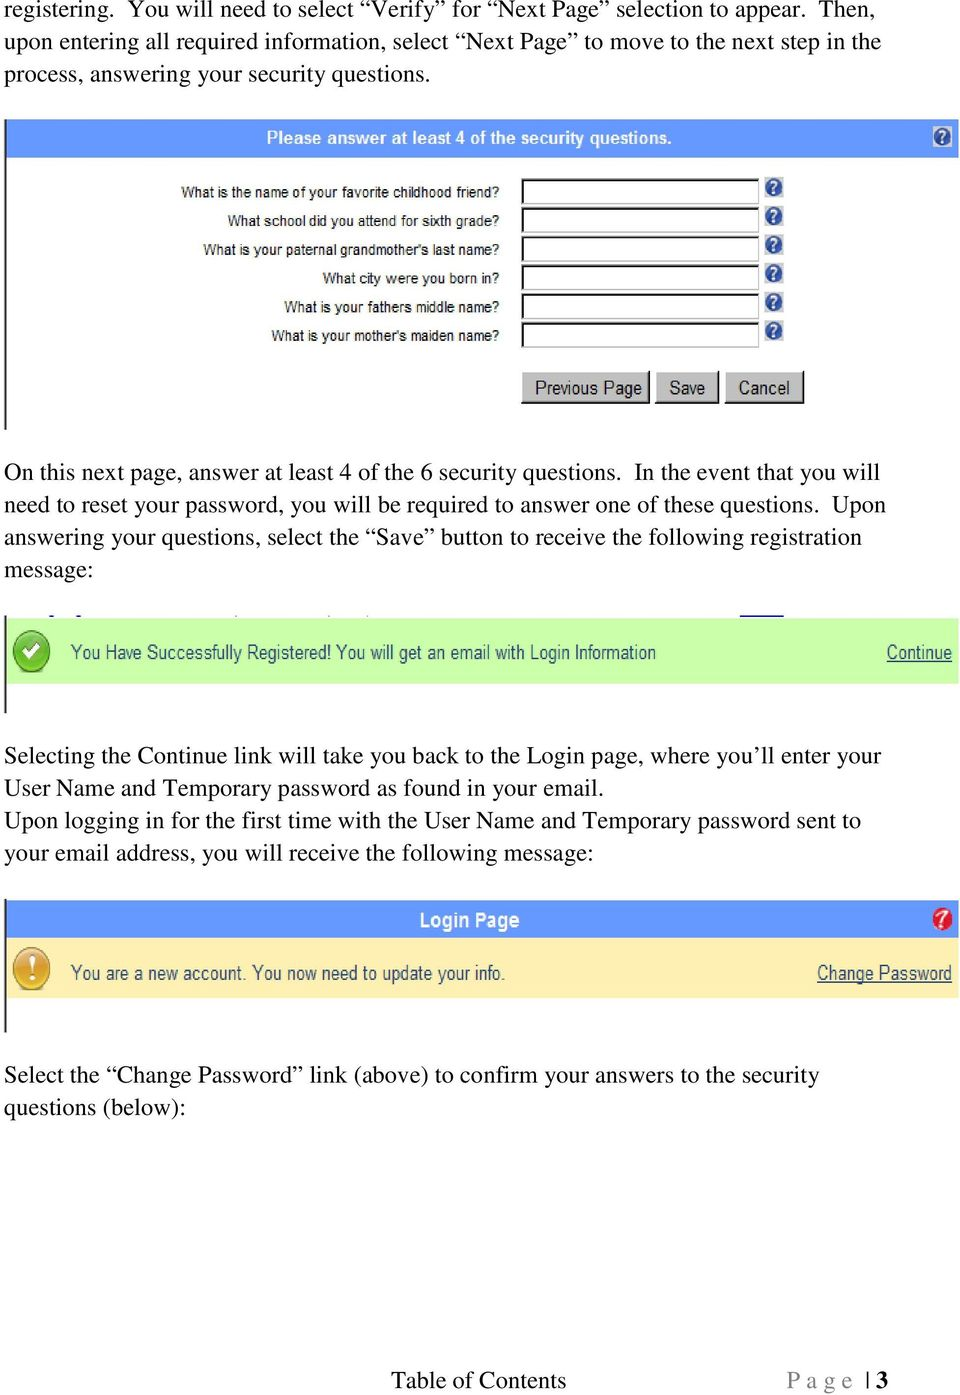 On this next page, answer at least 4 of the 6 security questions. In the event that you will need to reset your password, you will be required to answer one of these questions.